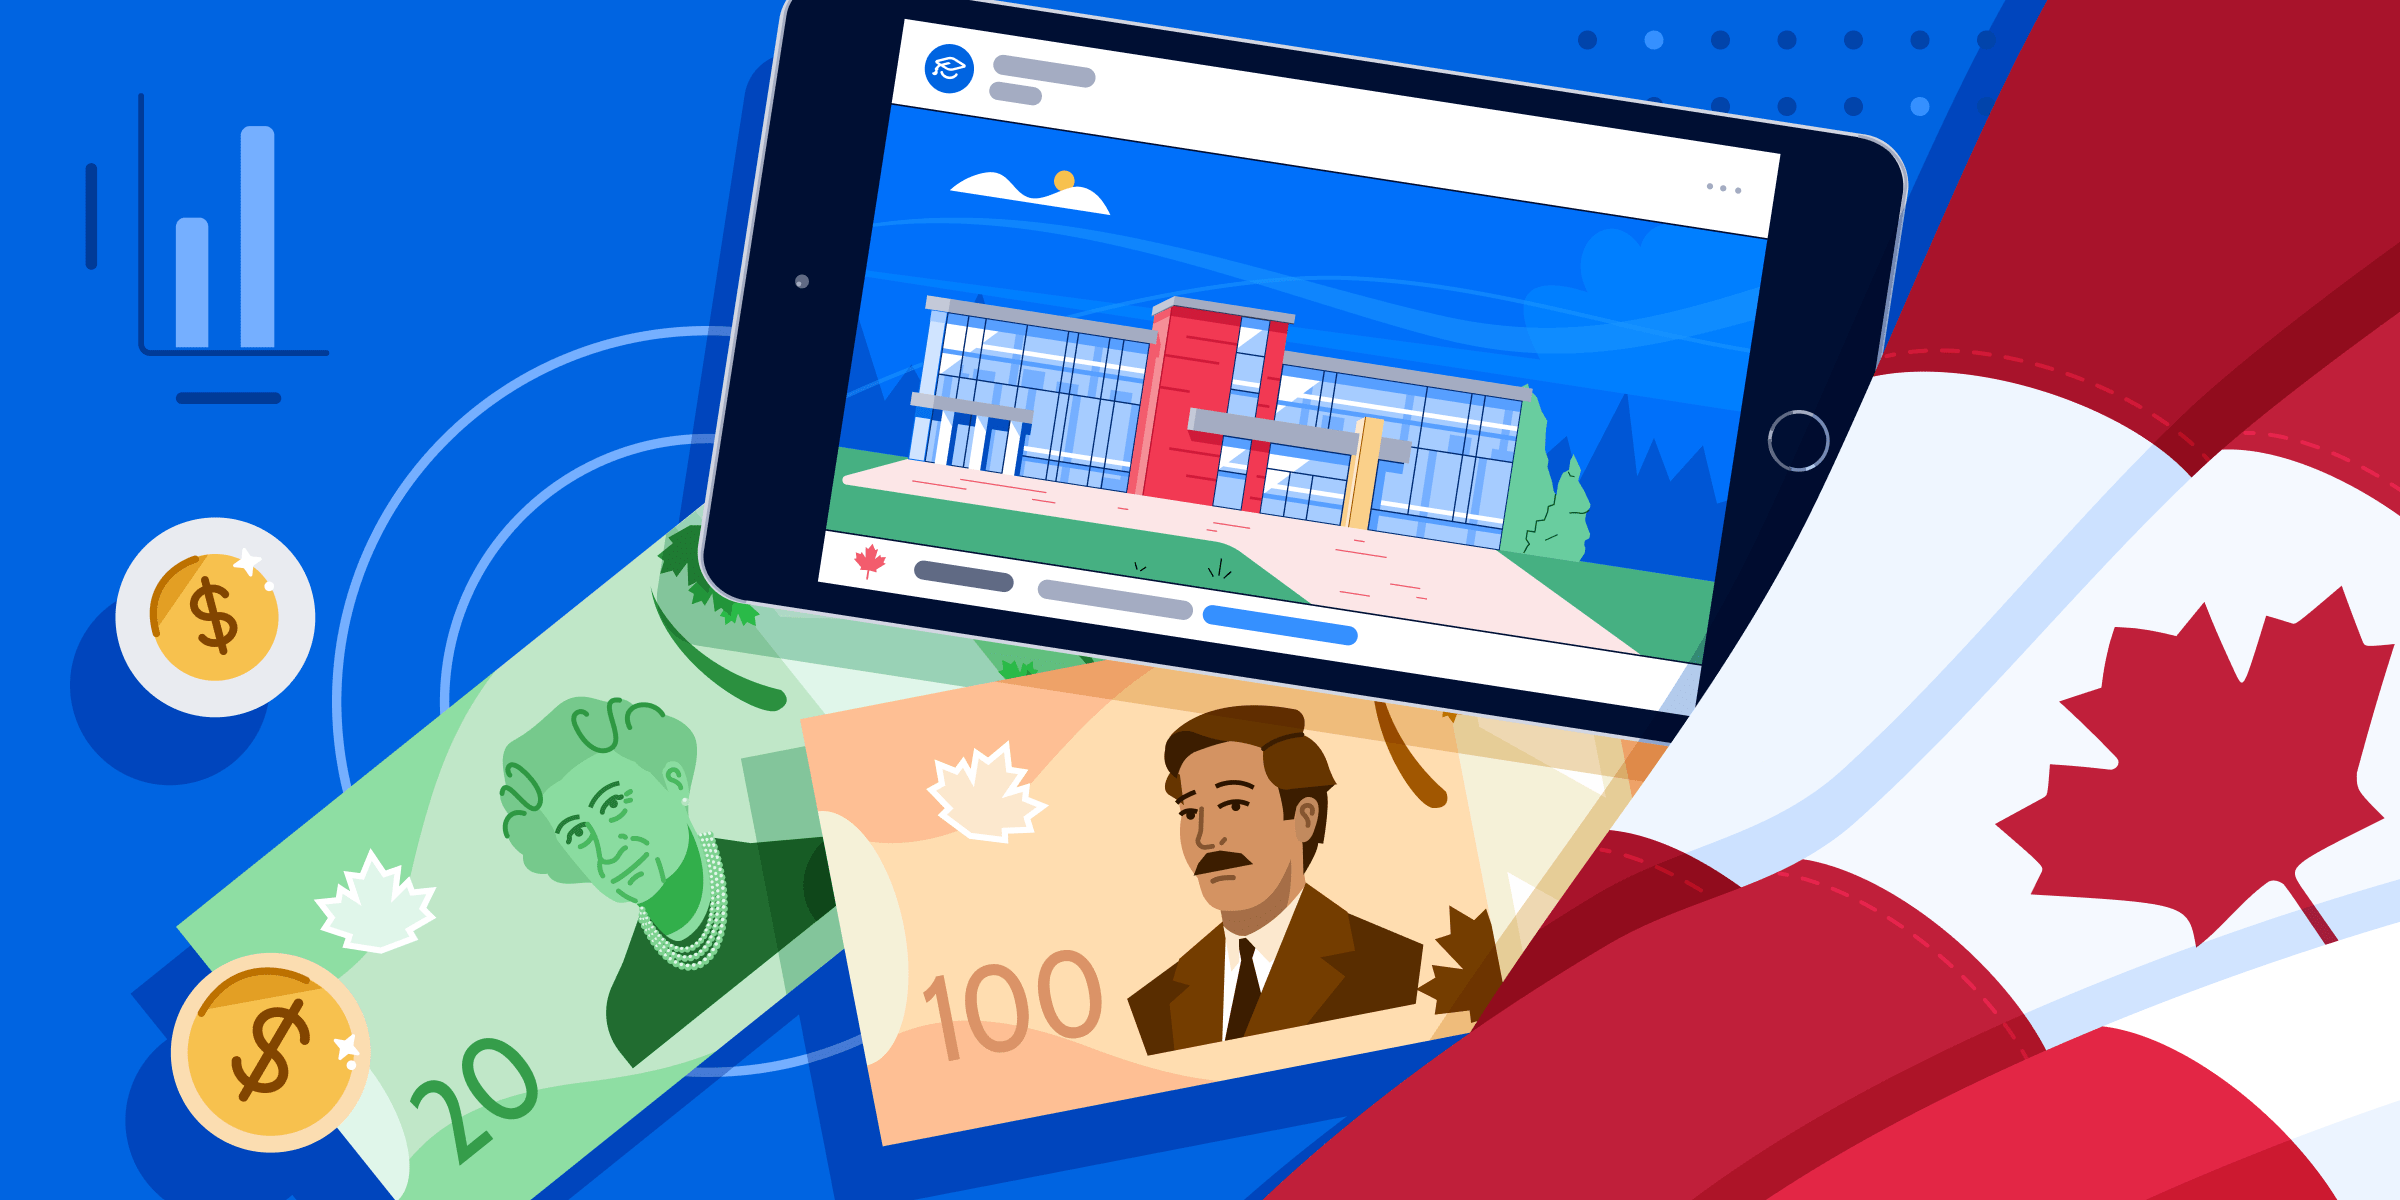 ApplyInsights: The Economic Impact of the Pandemic on Canadian Universities banner featuring Canada flag, $100, $20, and tablet screen